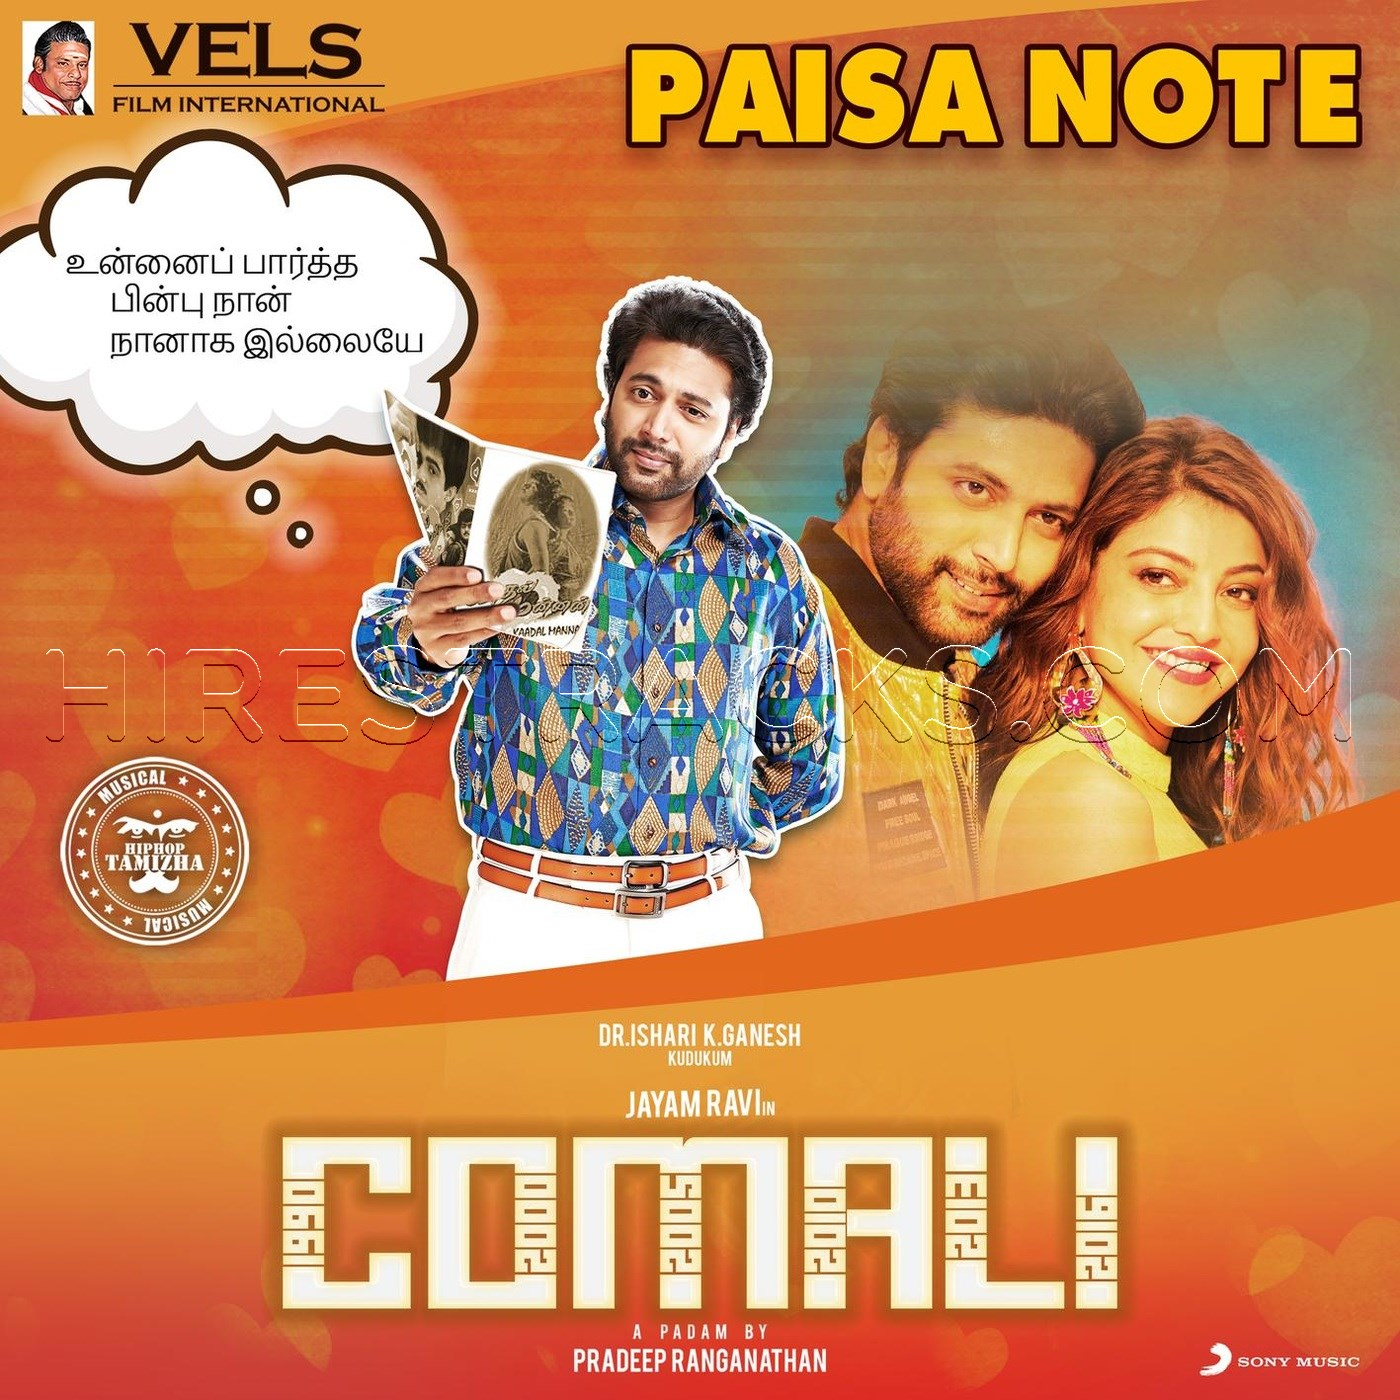 Paisa Note (From Comali) (2019)